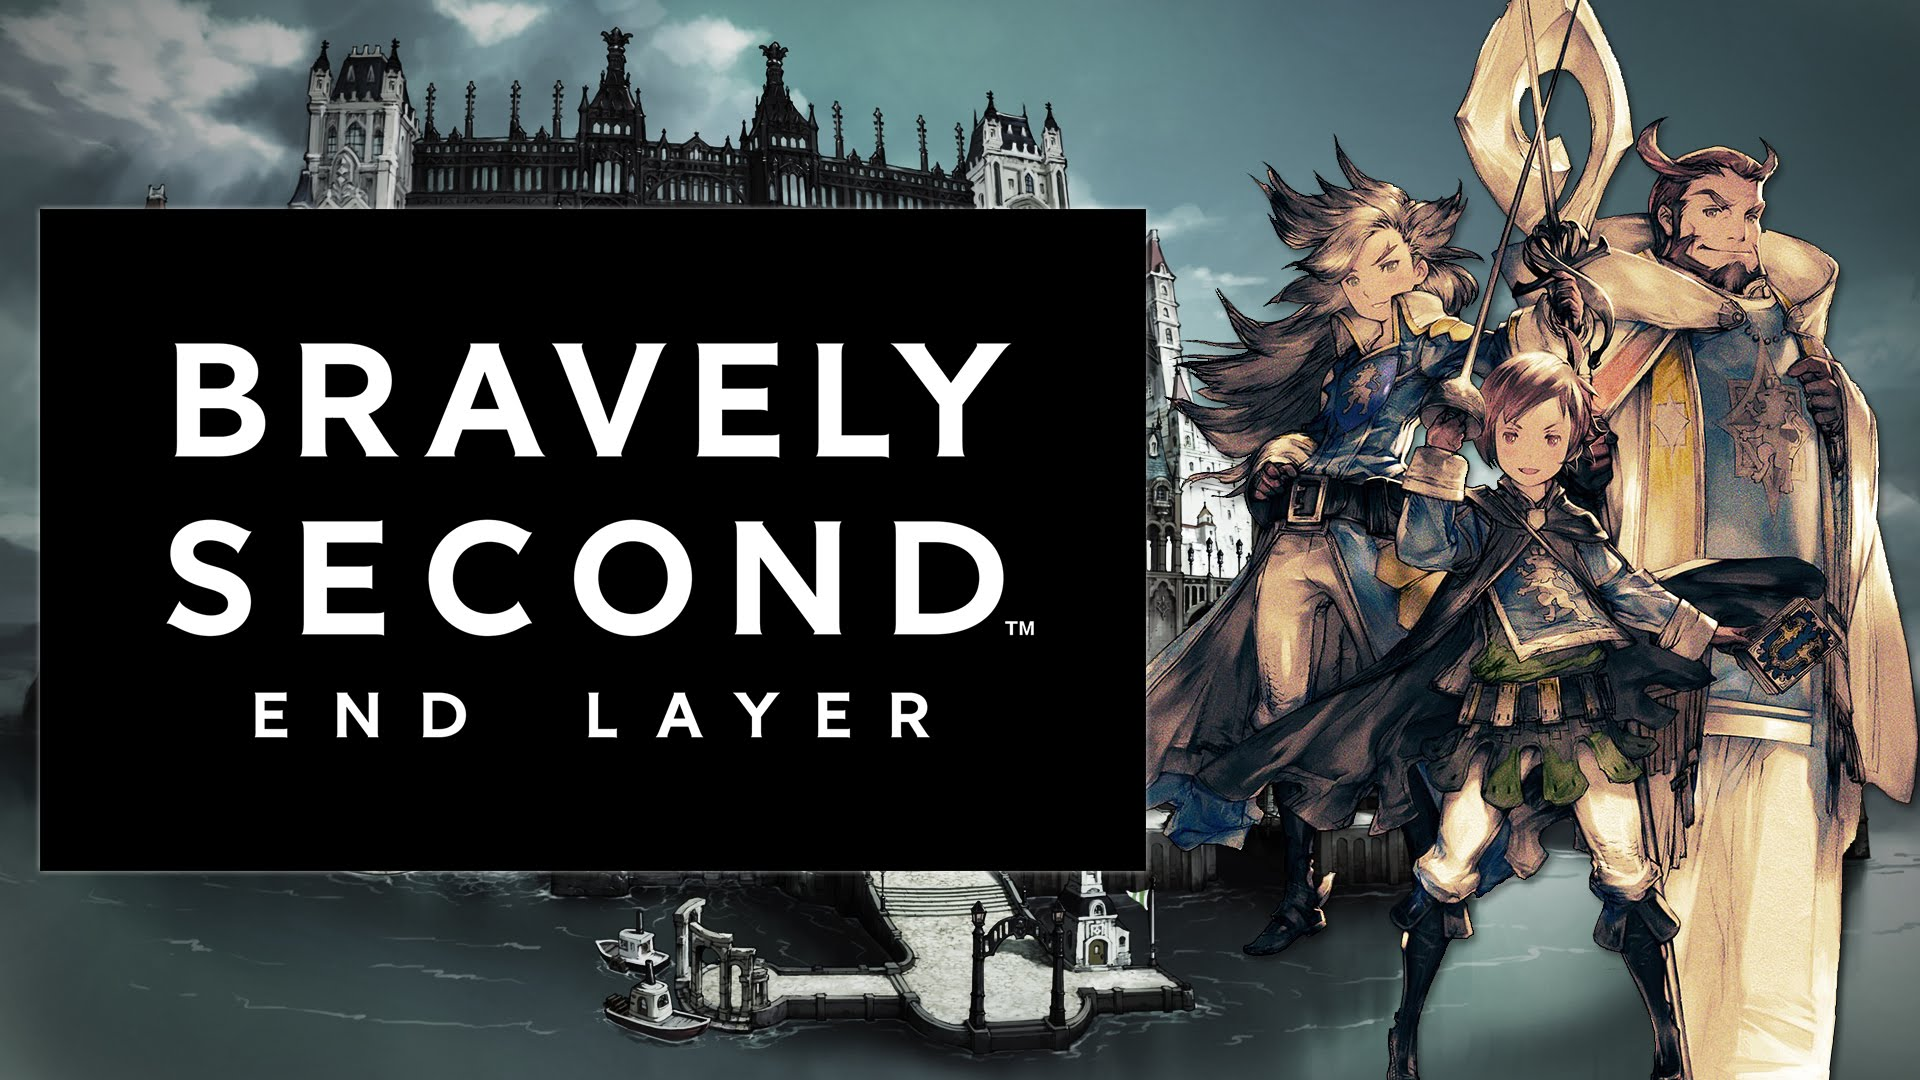 Nice wallpapers Bravely Second: End Layer 1920x1080px